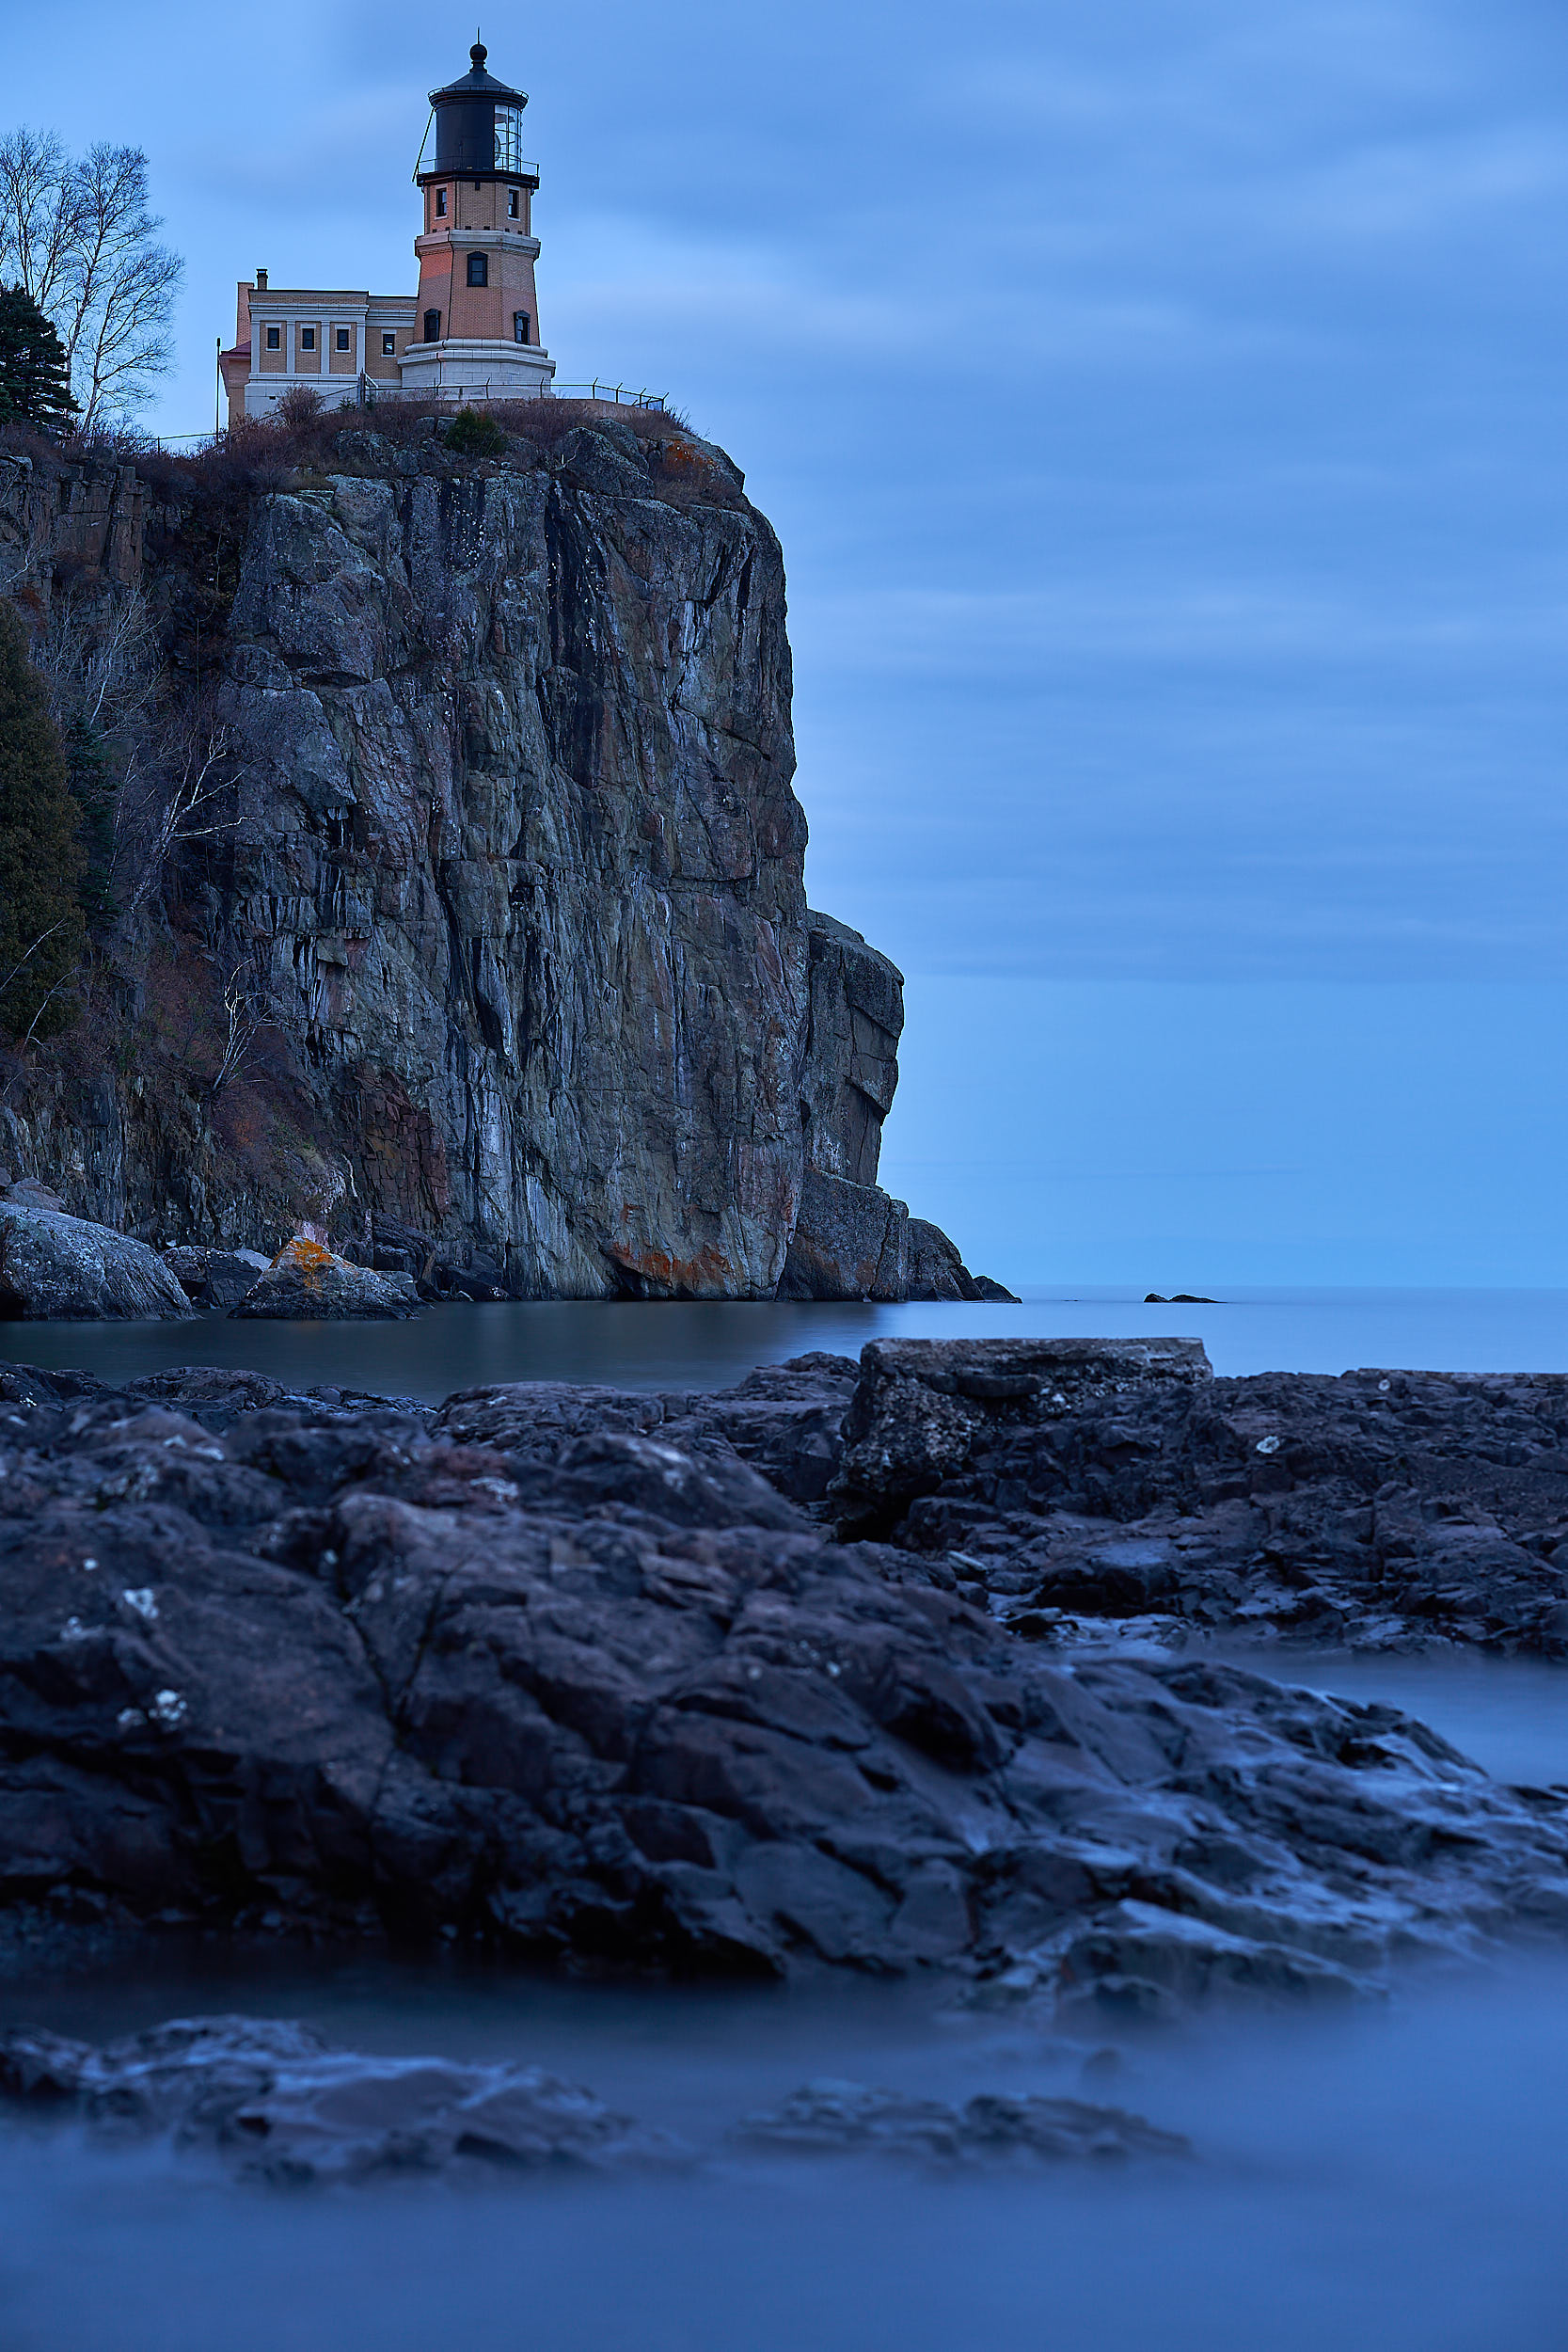 Split Rock Lighthouse Minnesota Cliff Dropping Down to Lake Superior | Photo by BillyBengtson.com